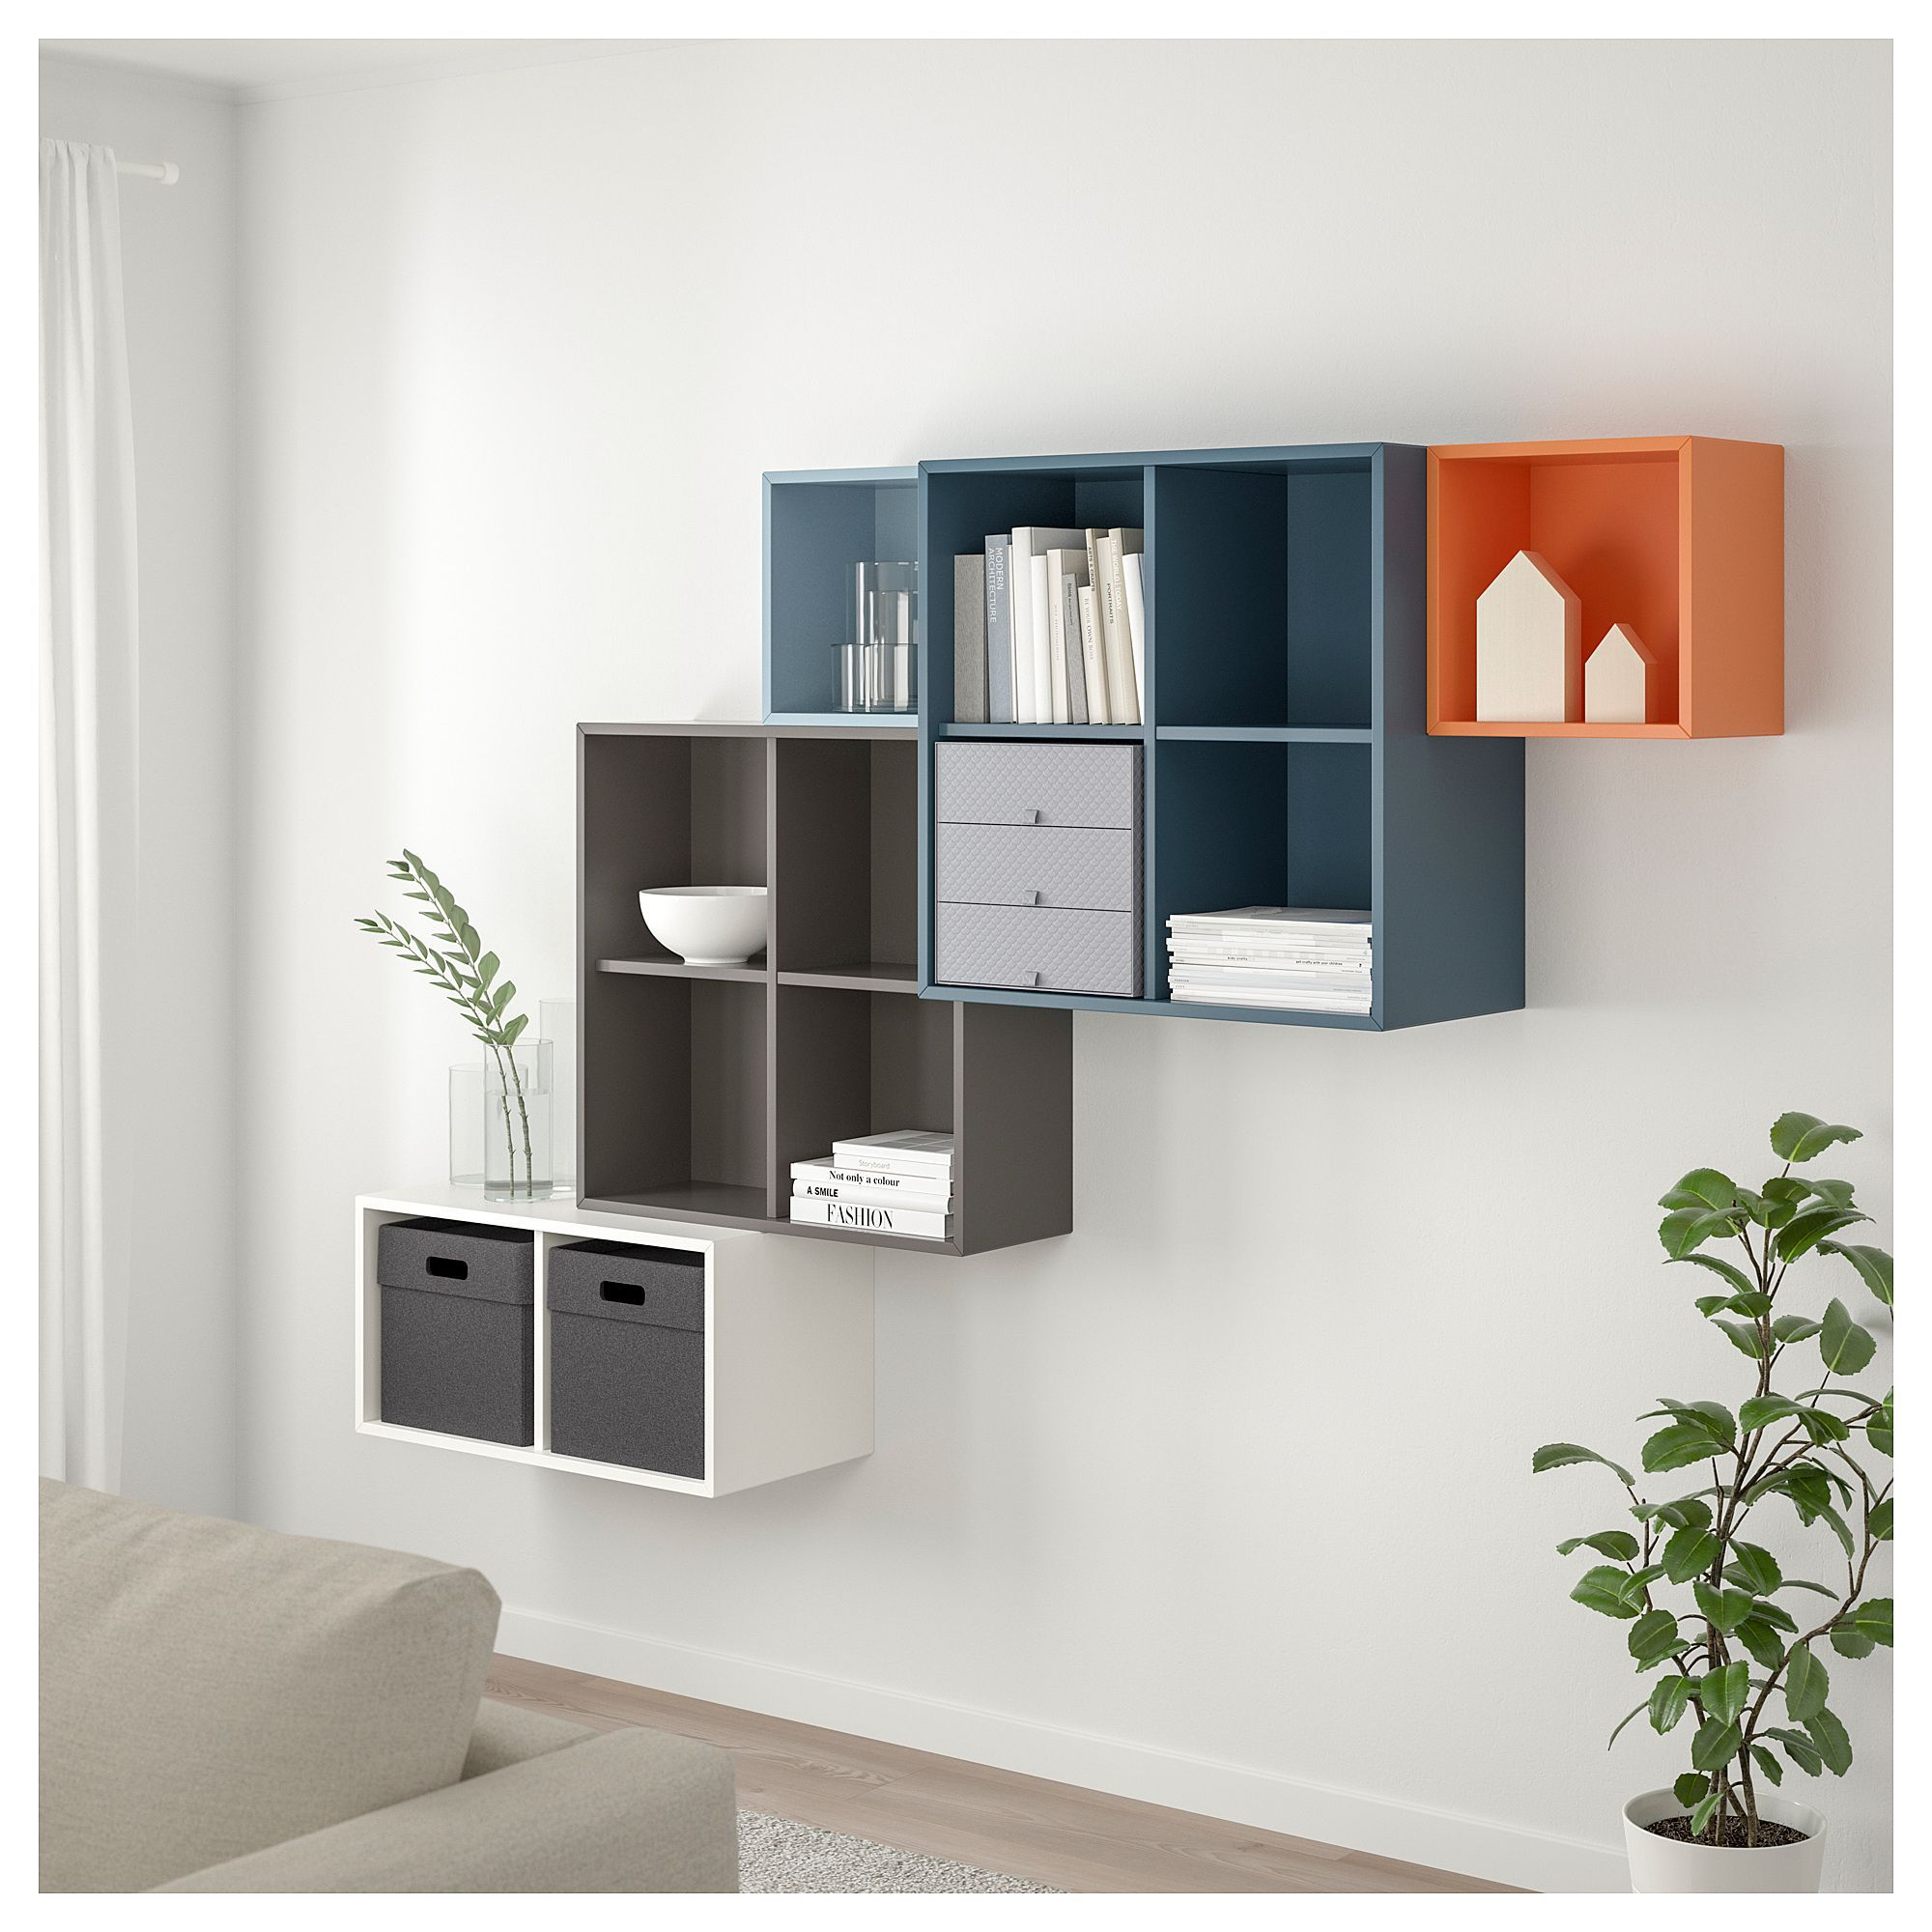 Ikea Eket Wall Mounted Cabinet Combination Multicolor Living Room Design Diy Diy Storage Ideas For Small Bedrooms Storage Boxes With Lids